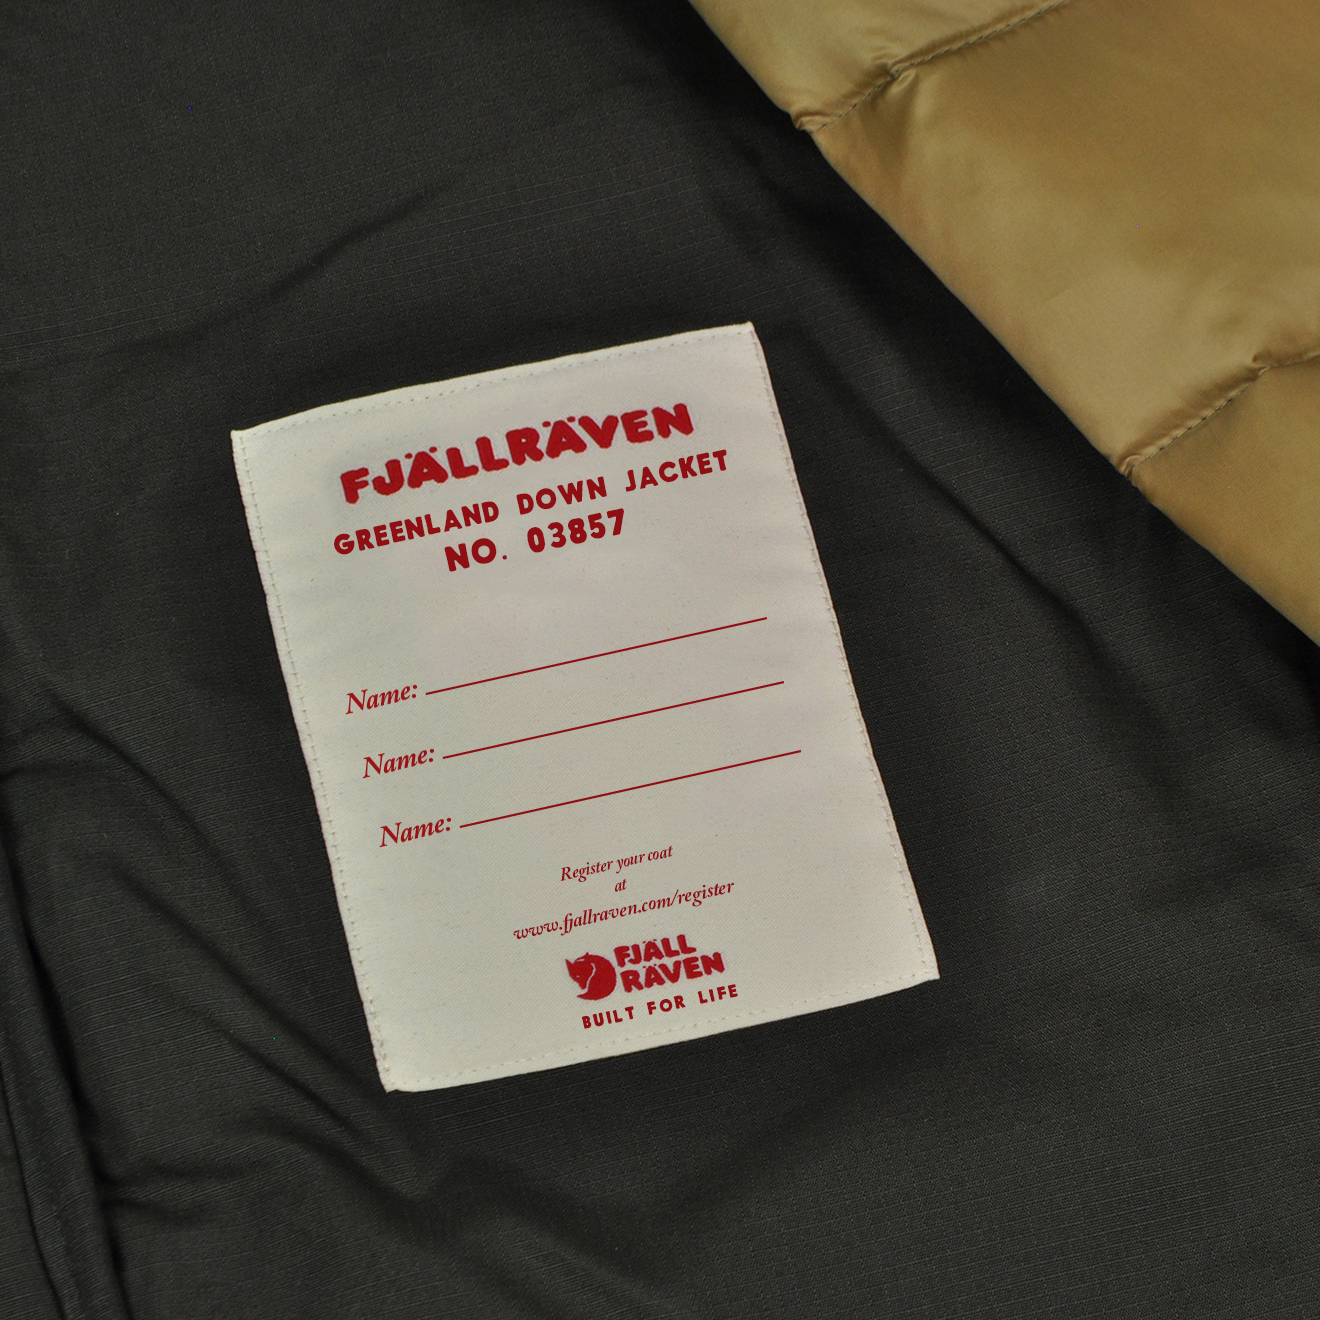 Fjällräven coats have been known to last so long that they can be passed down to future generations. A new label lets you pass it on for more adventures.